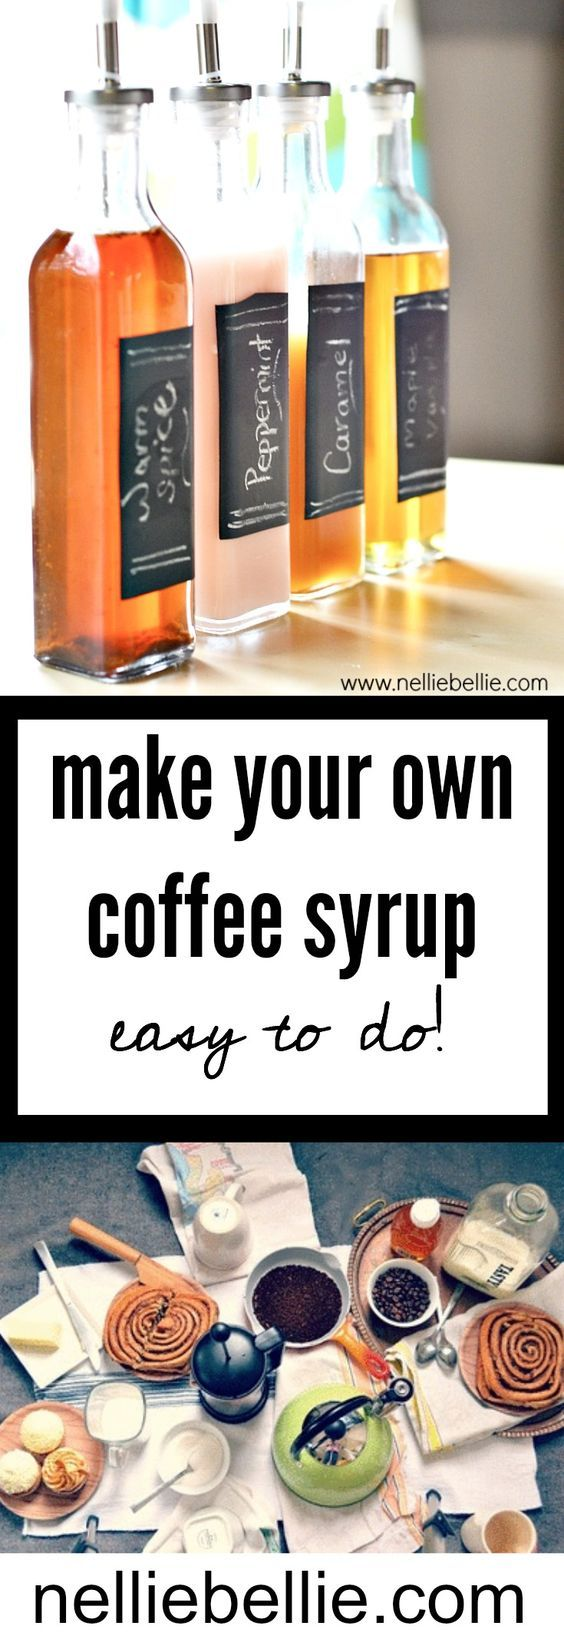 Make your own homemade coffee syrup with this easy coffee syrup recipe!! Easy to do and customize! ~nelliebellie.com